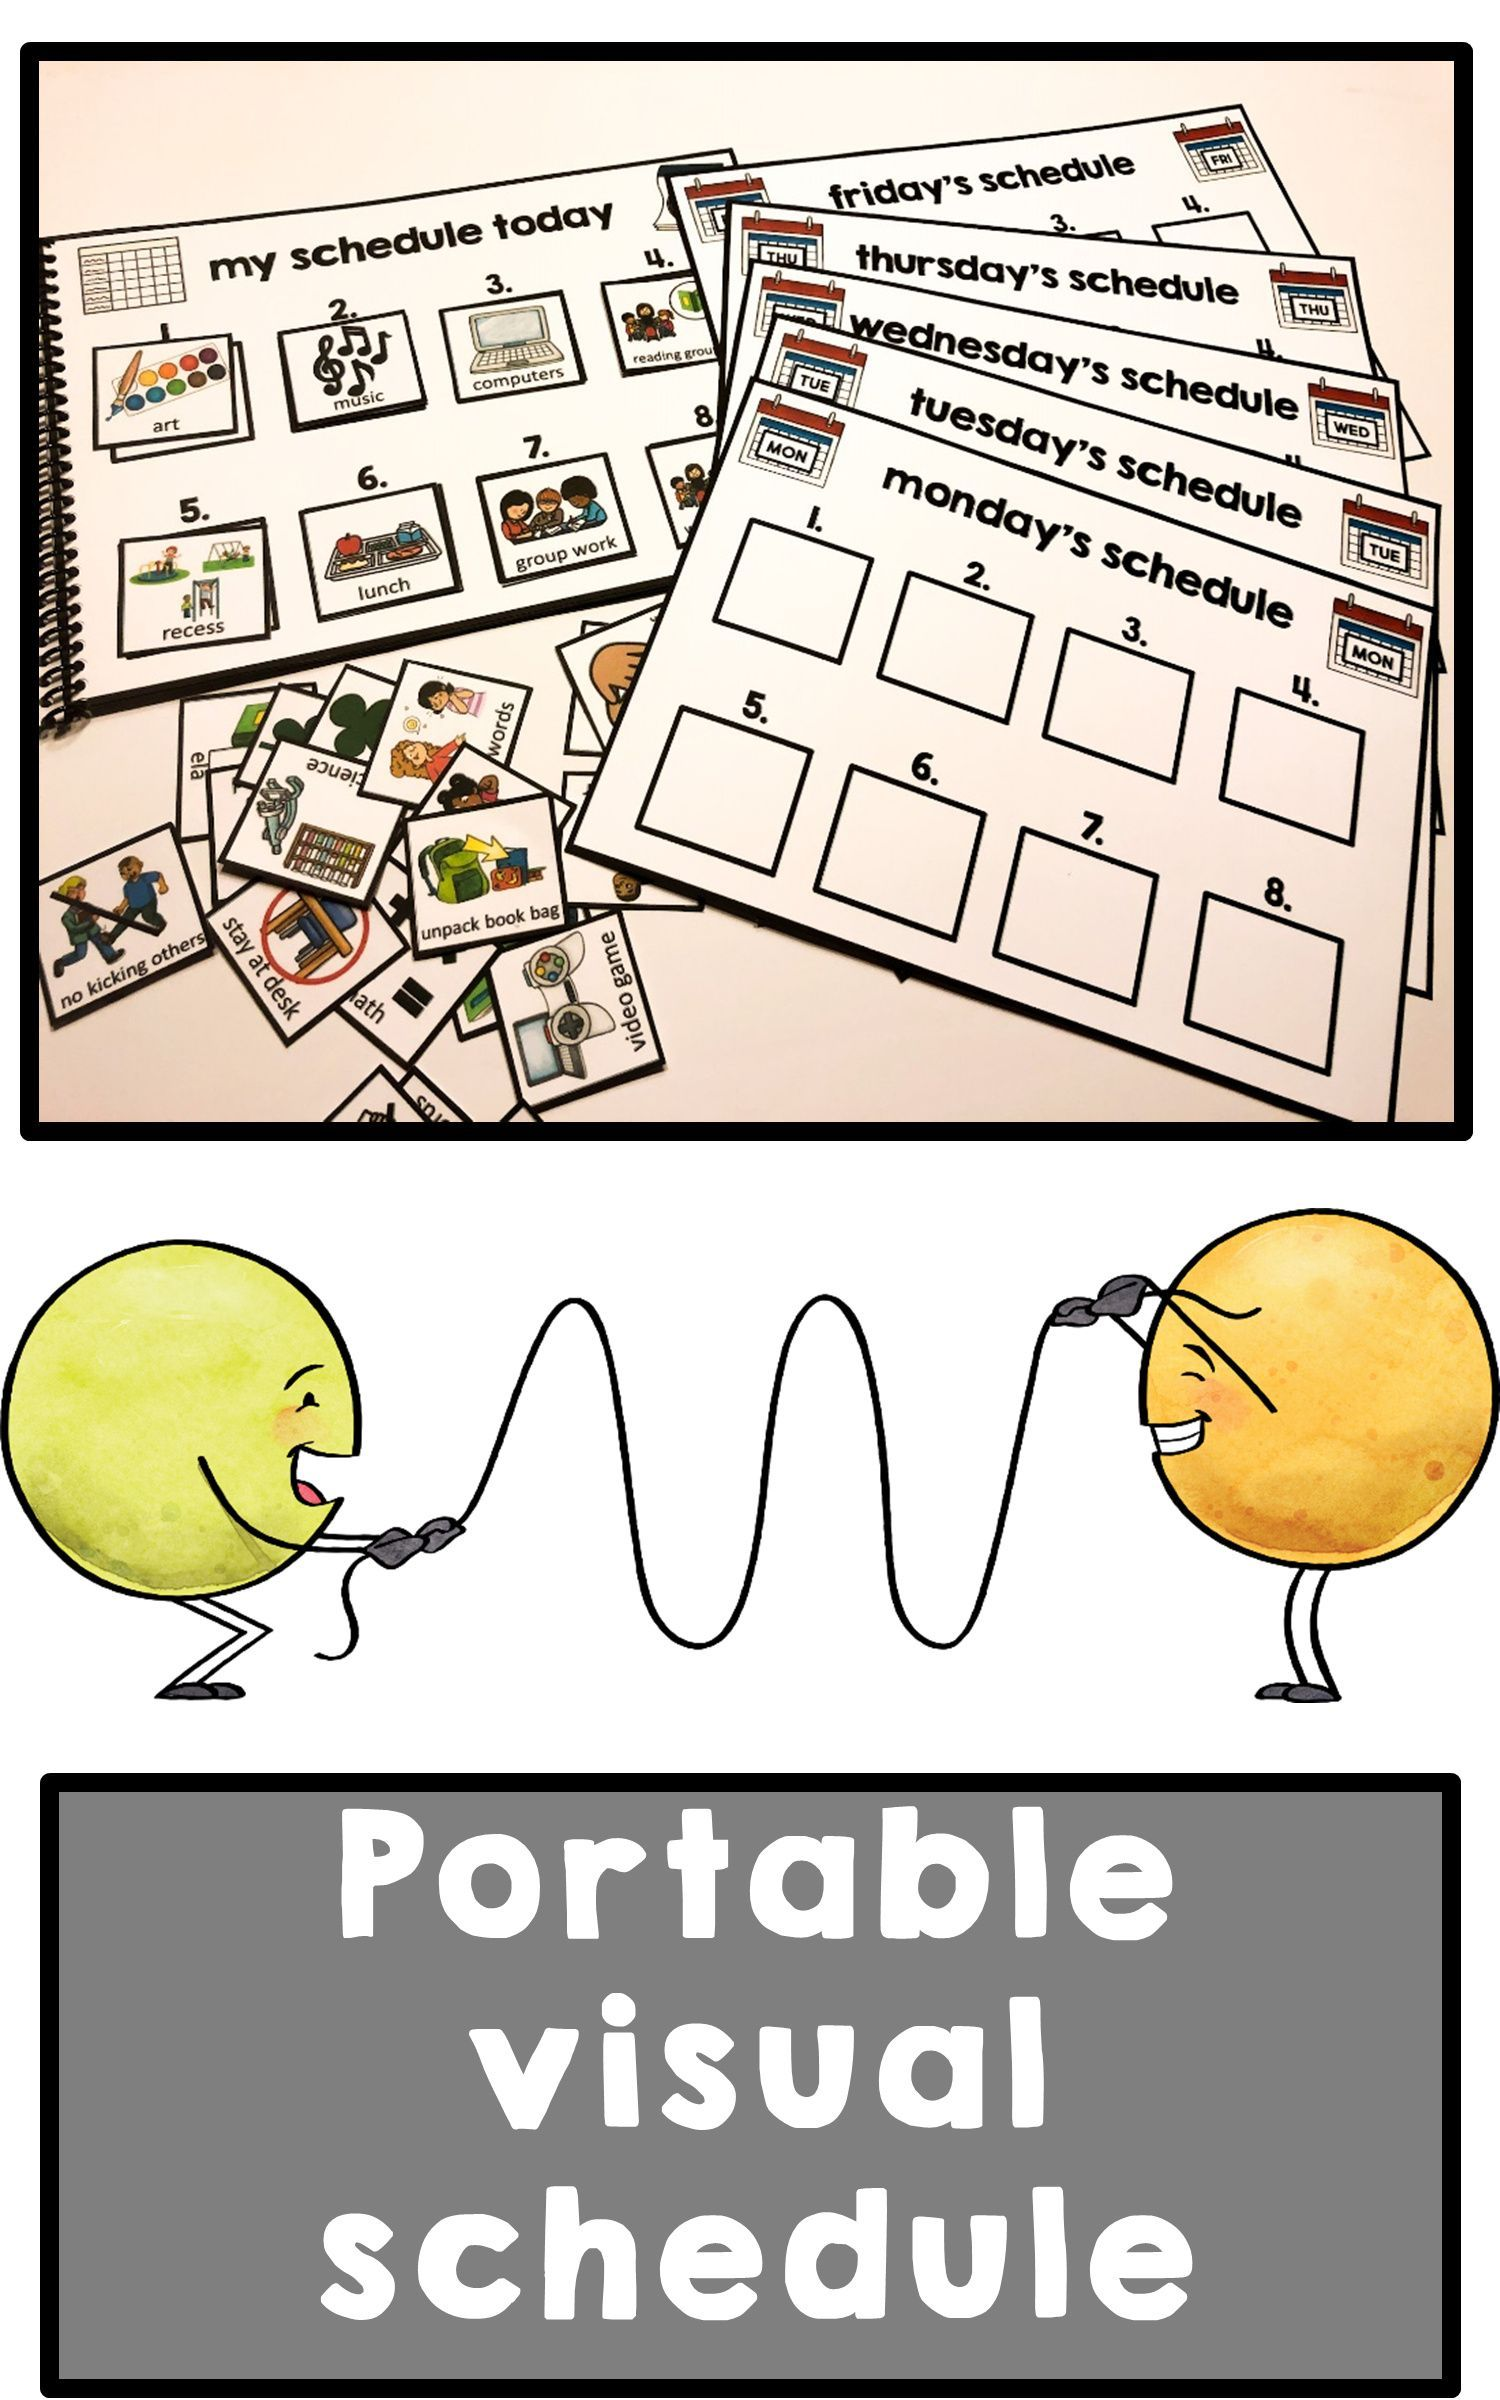 Portable visual schedule and task analysis for wit